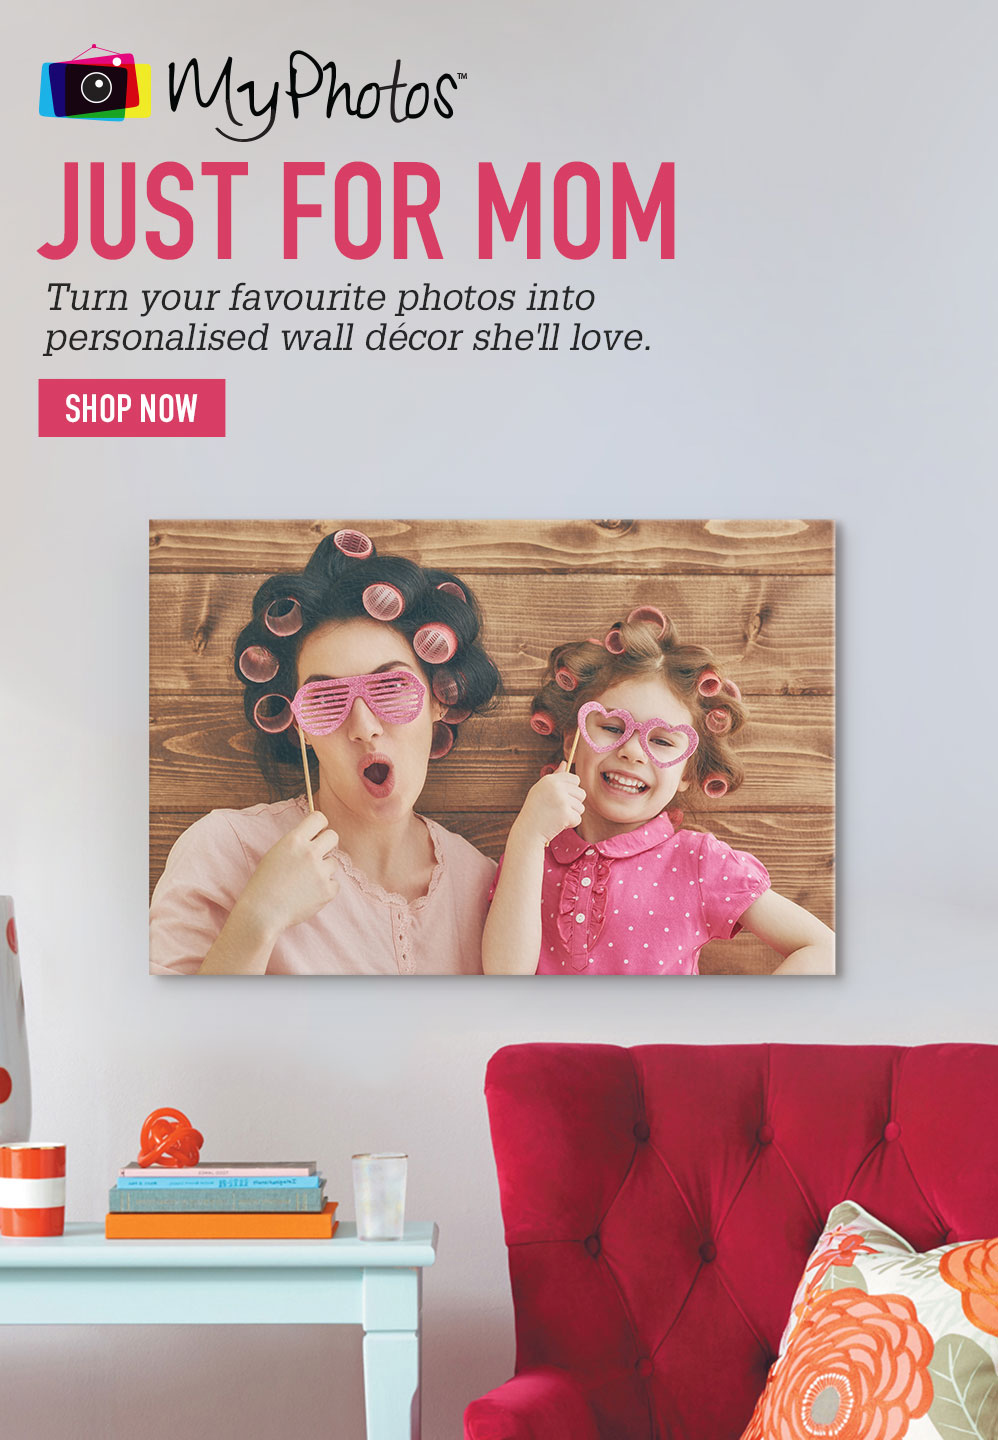 JUST FOR MOM. Turn your favorite photos into personalised wall décor she'll love. SHOP NOW